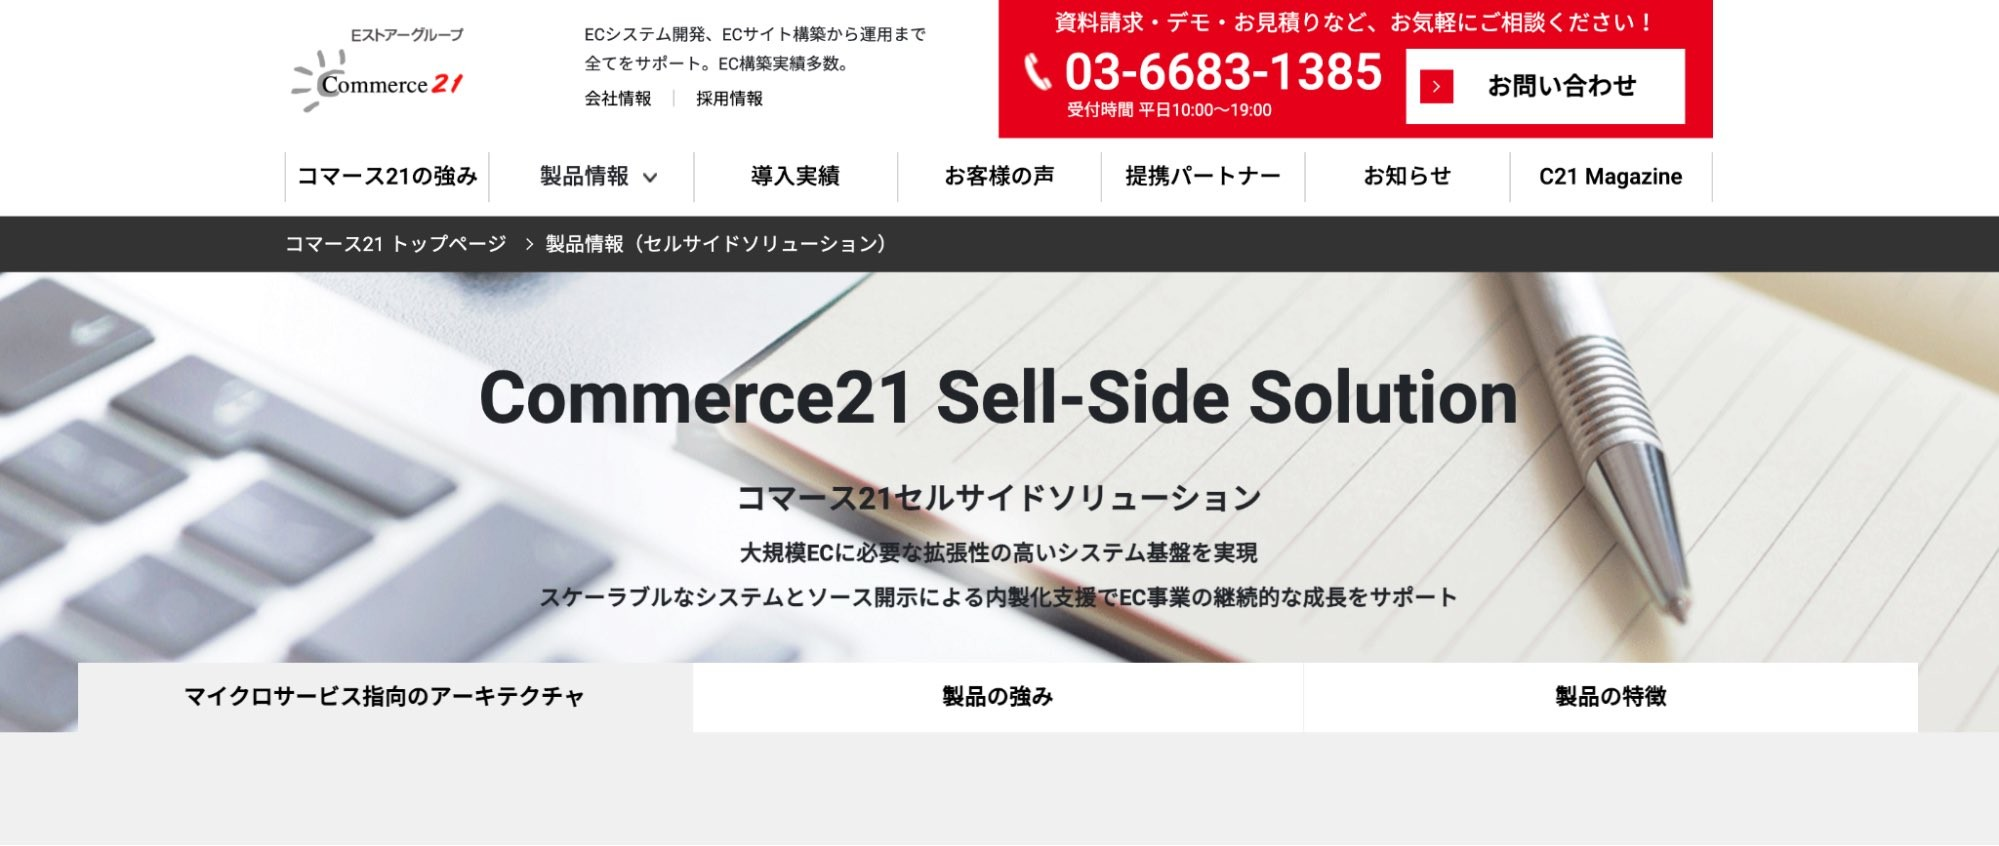 Commerce21 Sell-Side Solution